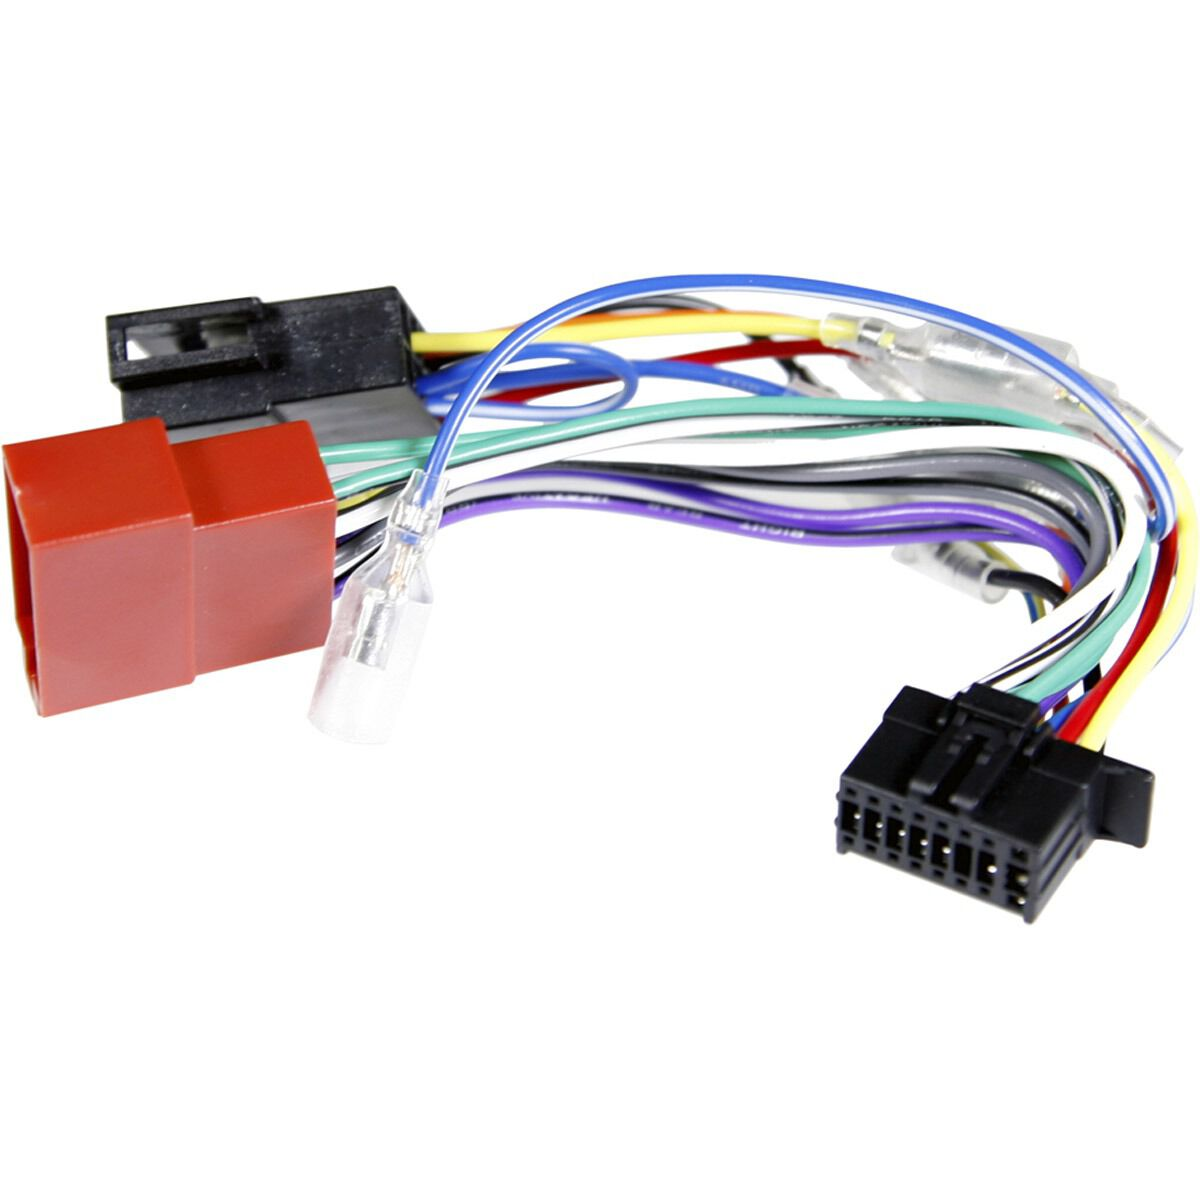 Aerpro Wiring Harness Pioneer Guide And Troubleshooting Of Avh X2700bs Color Diagram Harnesses Supercheap Auto Rh Supercheapauto Com Au 5200b